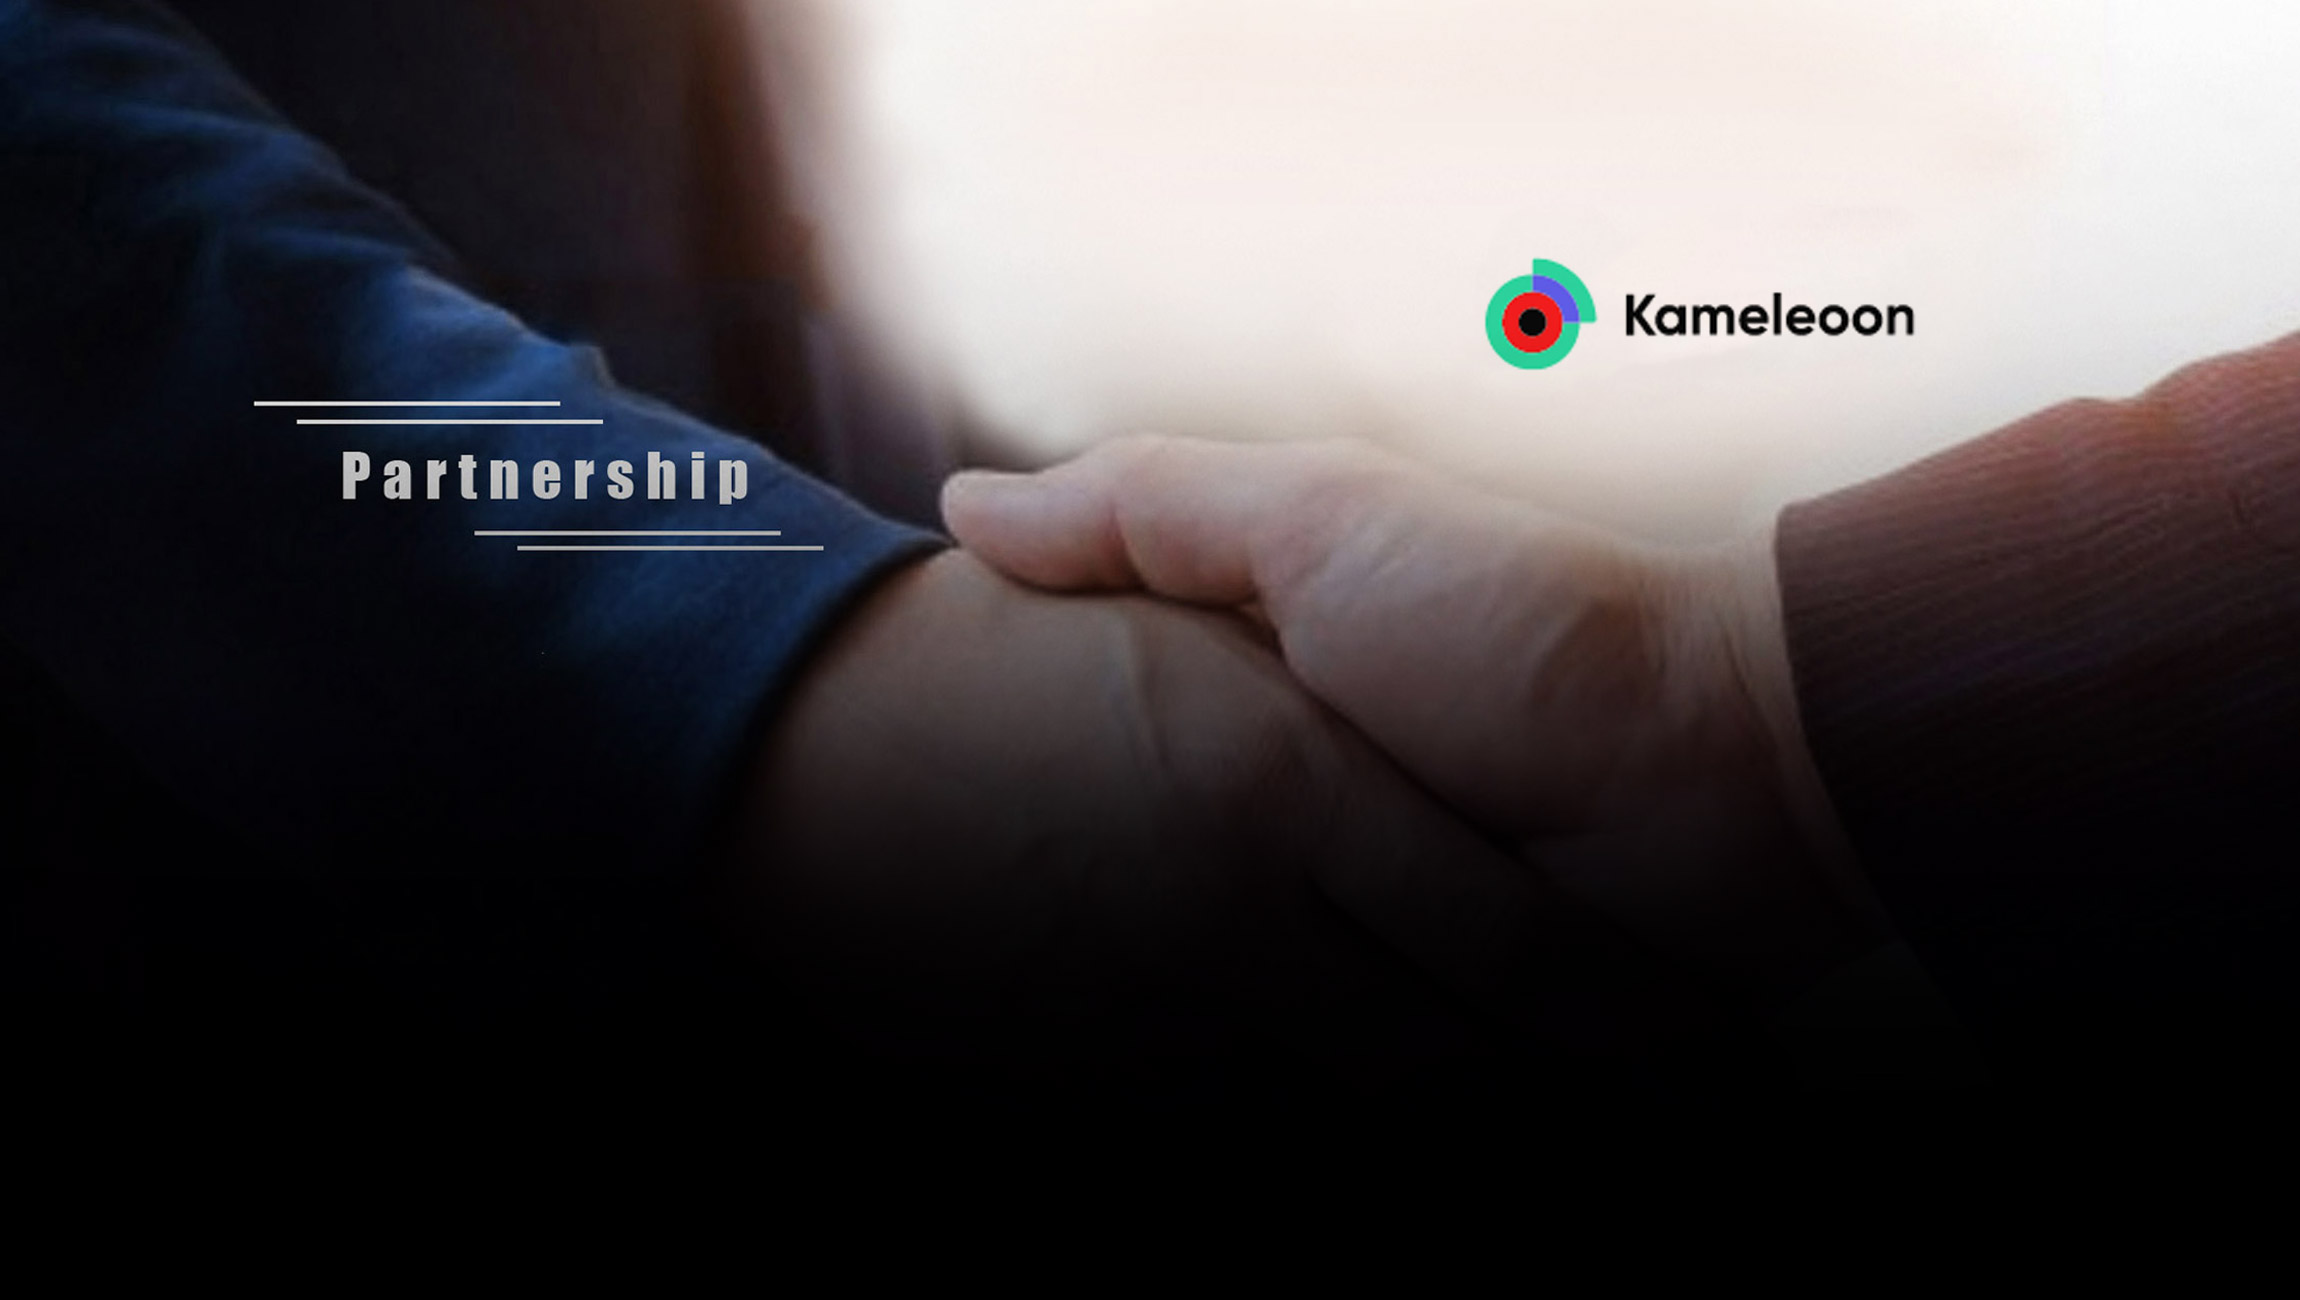 Kameleoon Expands Partner Ecosystem Through Seamless New Integrations with Mixpanel, Heap and Segment